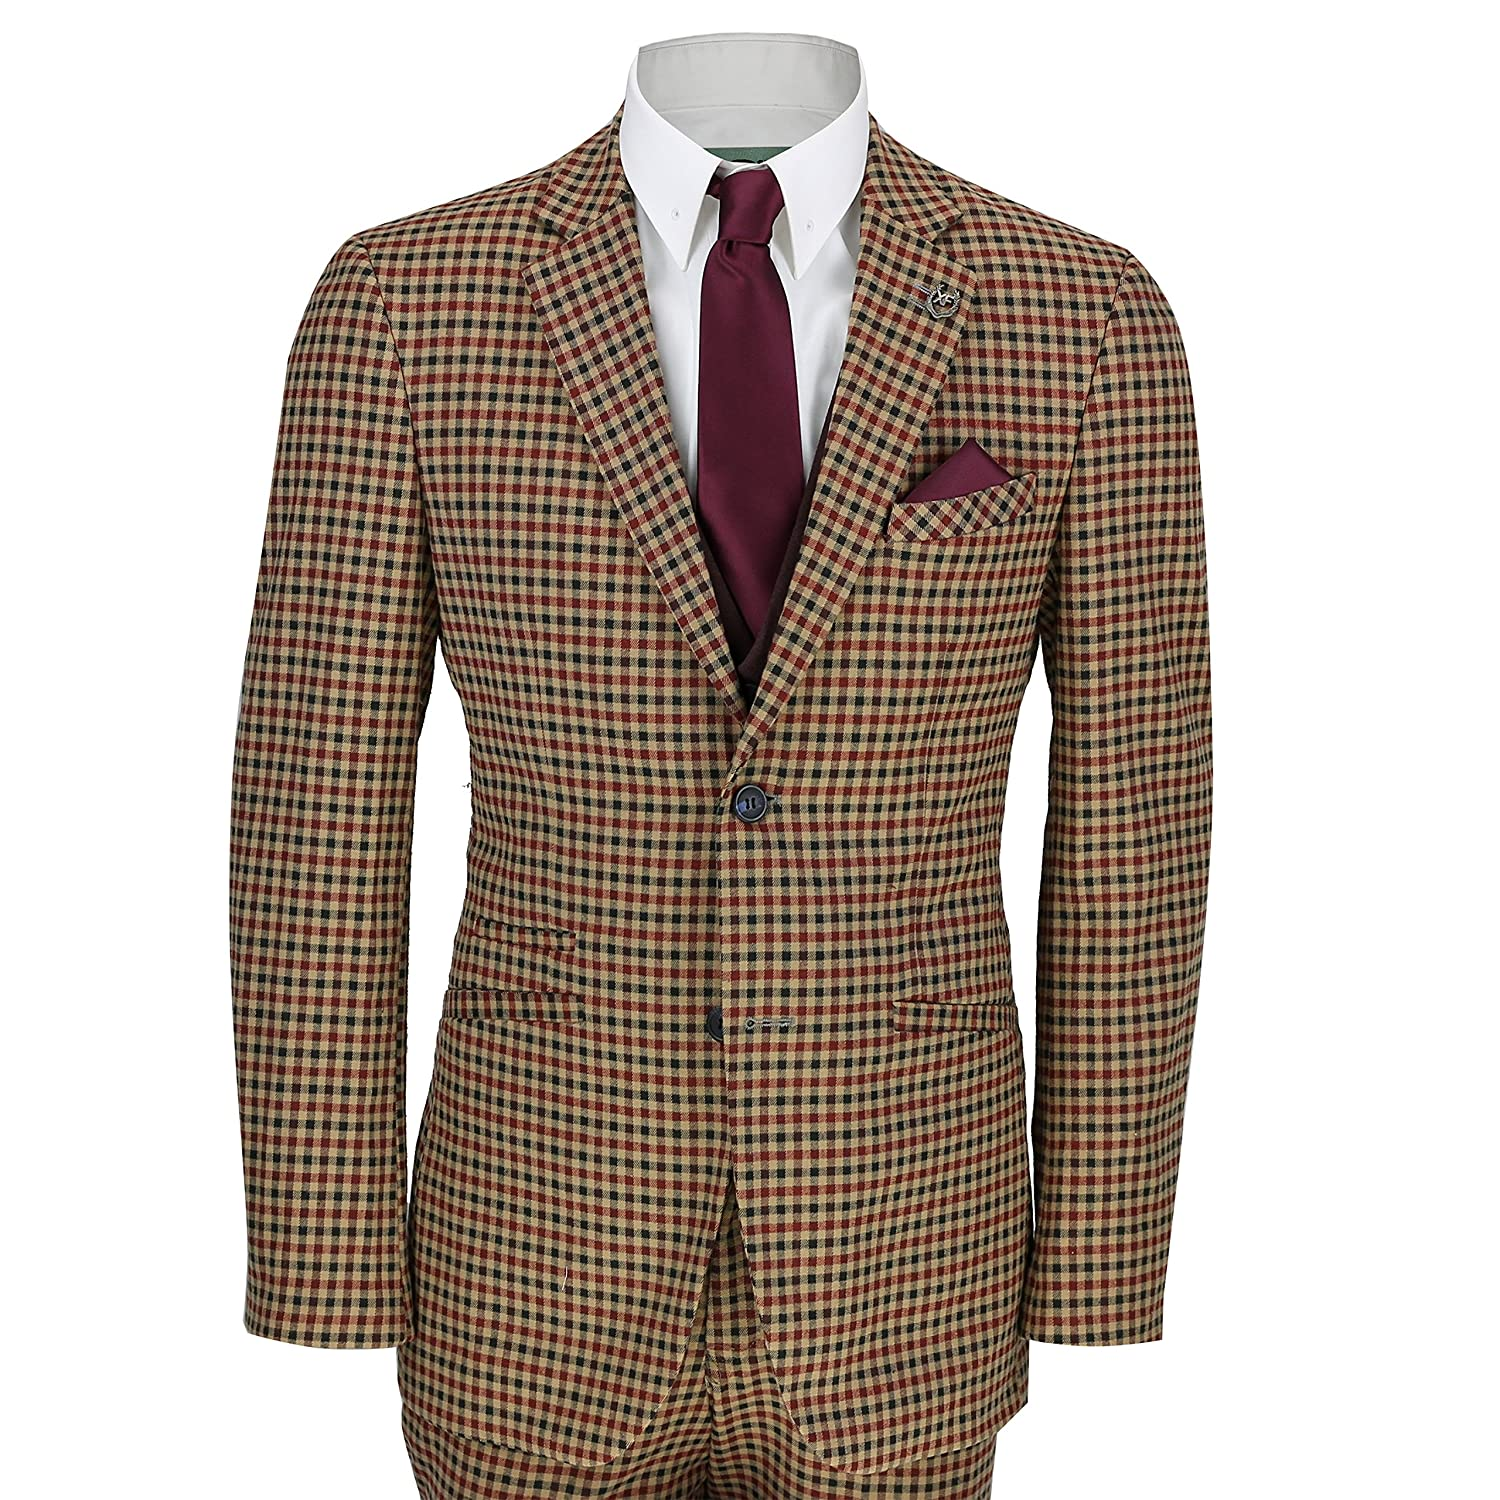 1970s Men's Suits History | Sport Coats & Tuxedos Xposed Mens Vintage 3 Piece Plaid Tartan Check Slim Tailored Fit Suit Jacket Waistcoat Trouser £104.99 AT vintagedancer.com